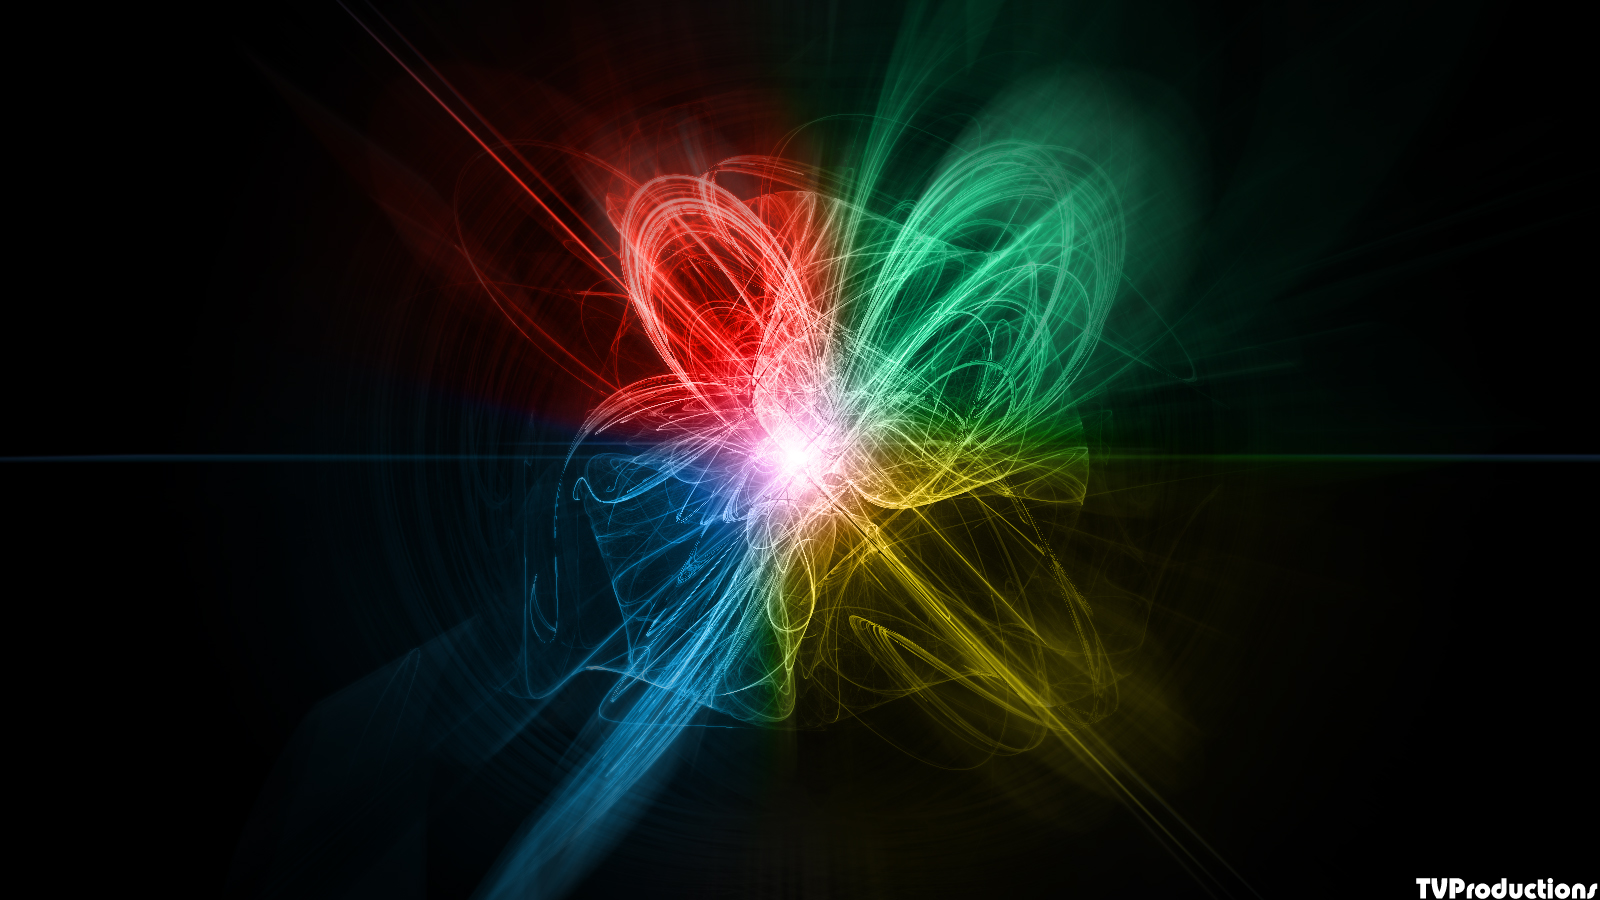 Neon Colors HD Wallpaper and Background Image | 1600x900 ...